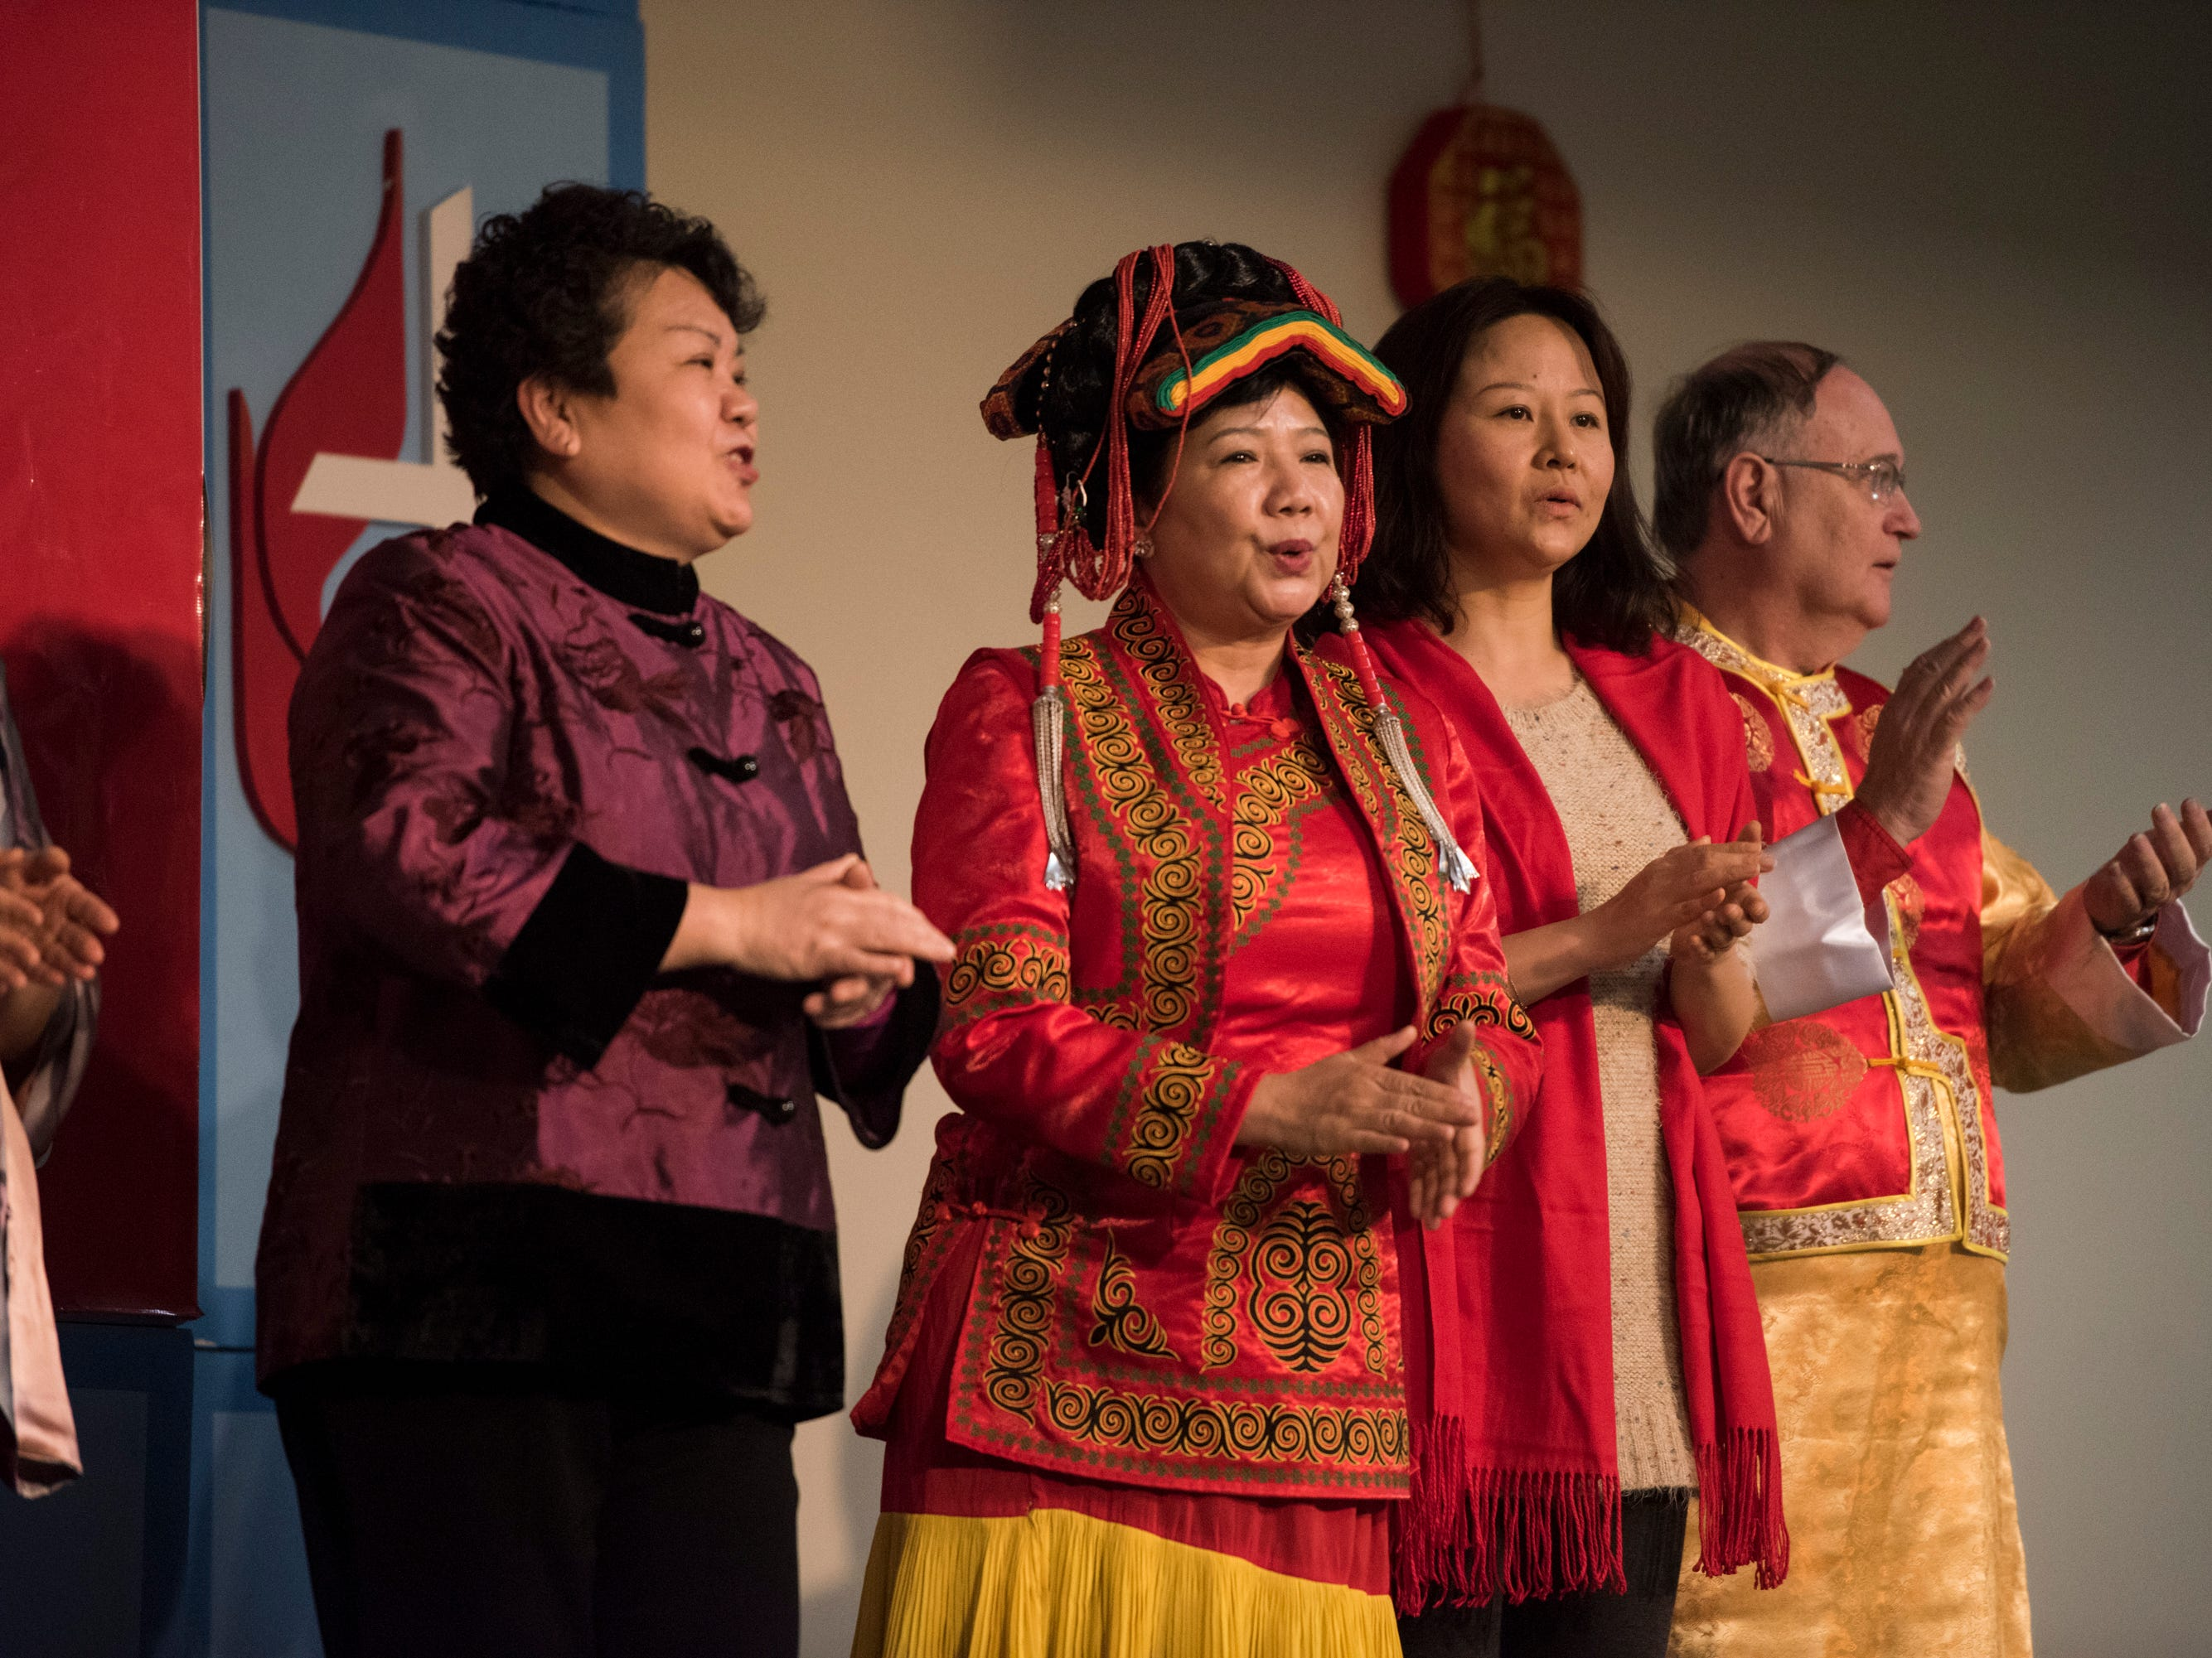 The Christian fellowship performs during the Central Alabama Association of Chinese 2019 Montgomery Chinese New Year festsival at Frazer Church in Montgomery, Ala., on Saturday, Feb. 9, 2019.